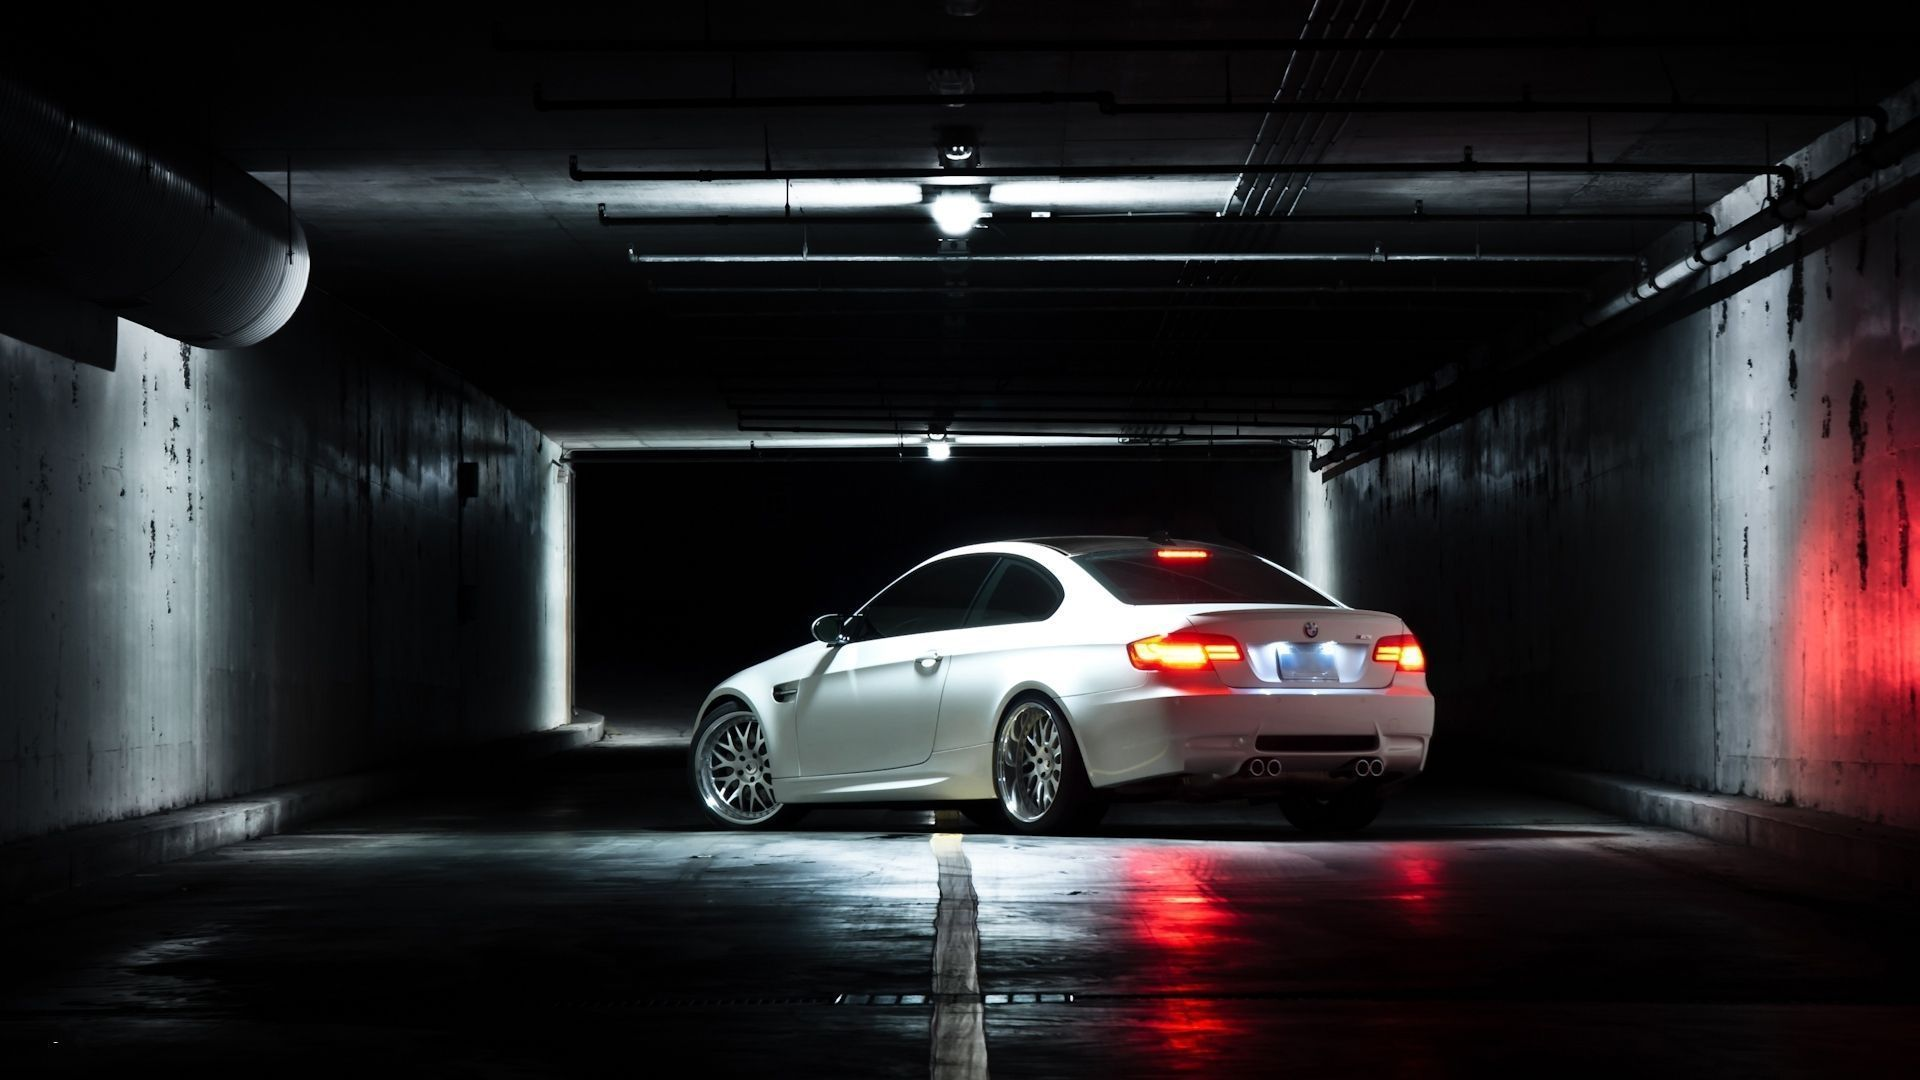 Bmw M3 E92 White BMW White Coupe Rear View Lights Reflection . Design Inspirations